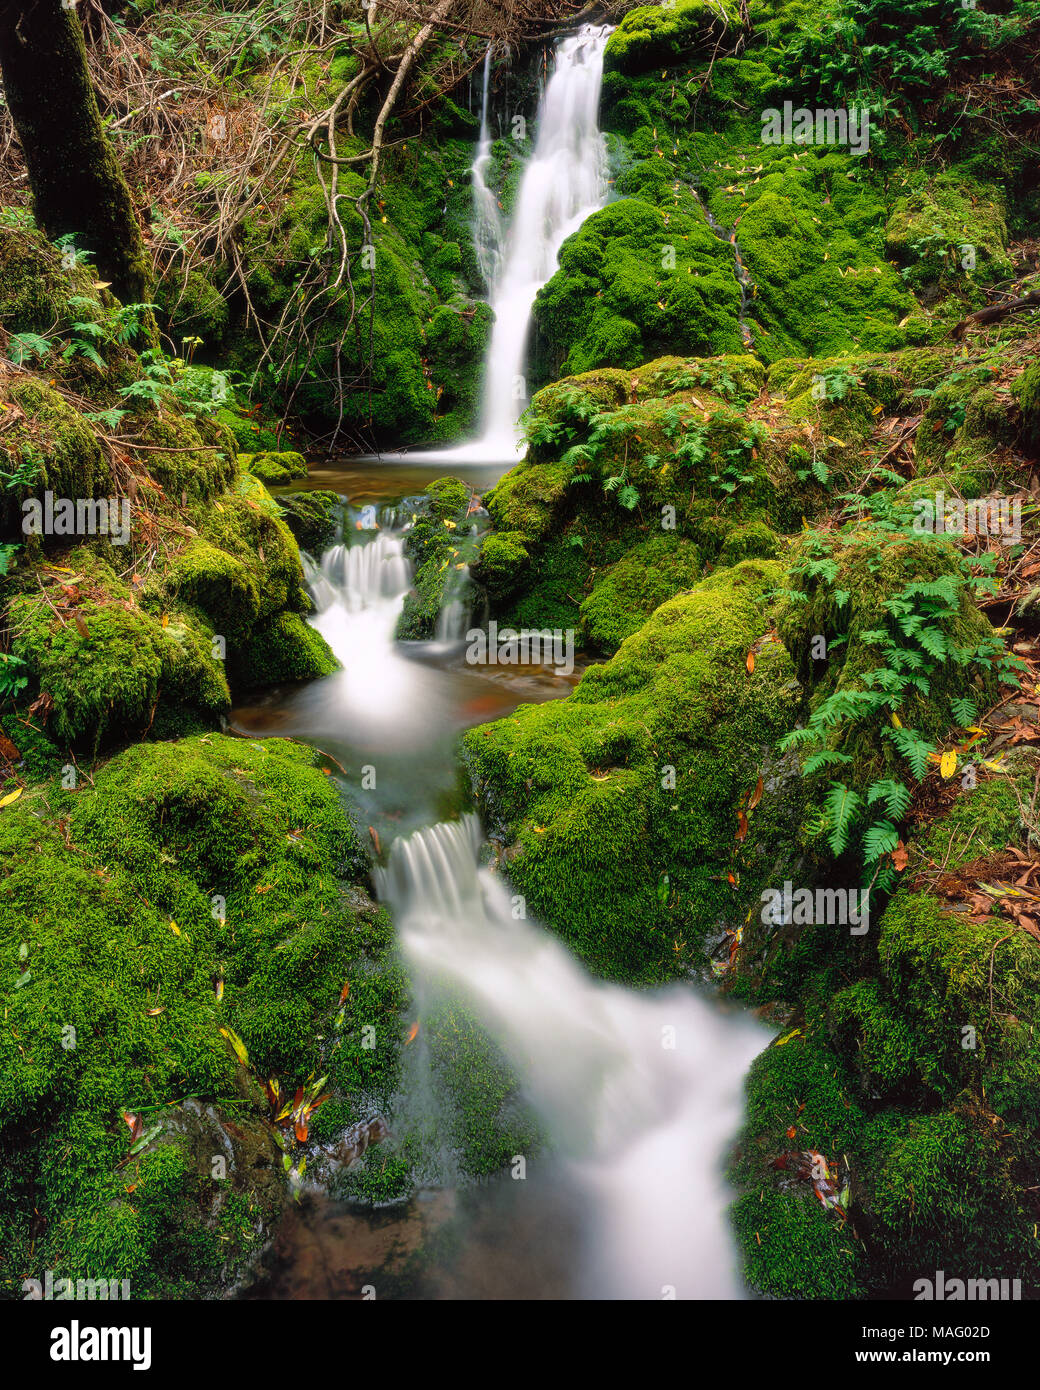 Moss Falls, Cataract Canyon, Mount Tamalpais, Marin County, California - Stock Image